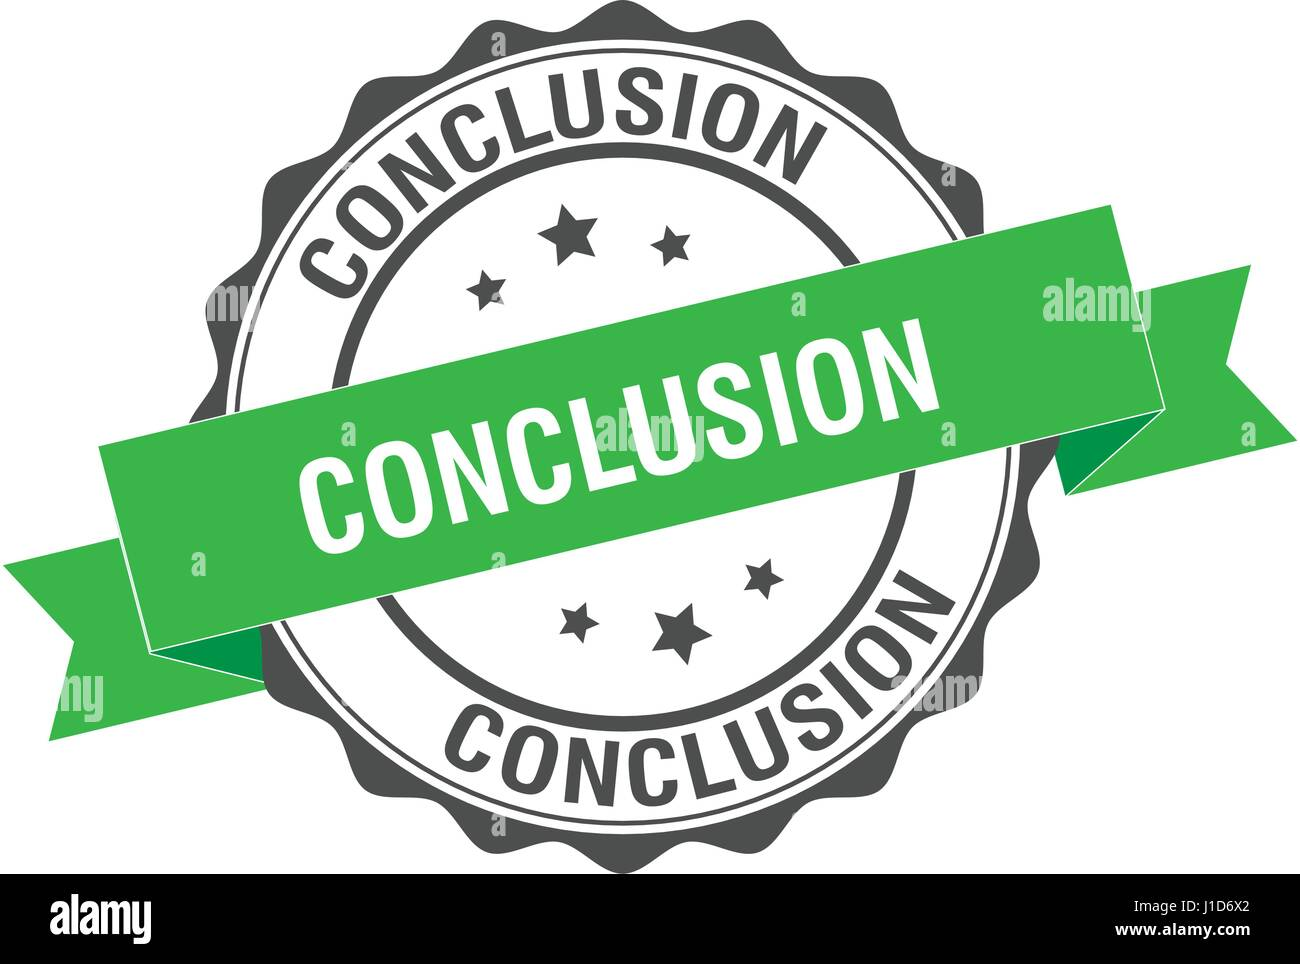 Conclusion stamp illustration - Stock Image